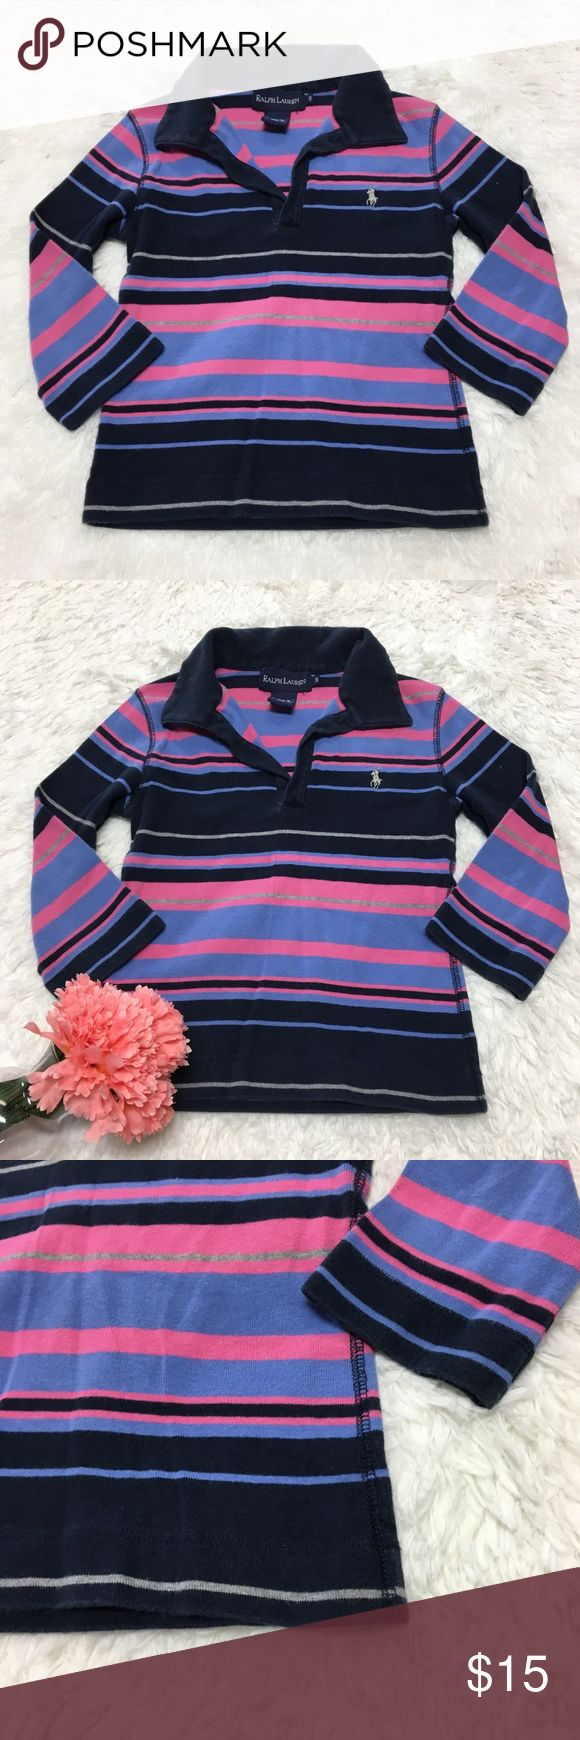 Ralph Lauren Stripe Rugby Collared Shirt 🔘Description: Ralph Lauren Stripe Rugby Collared Shirt girls size small 3/4in sleeve pink blue and navy blue ages 6/7 good used condition   🔘Measurements:   Pit to Pit: 13 inches               Shoulder to Hem: 16 inches                                                        Inventory: E   If you have any questions please feel free to let me know!                                Thanks for stopping by! Ralph Lauren Shirts & Tops